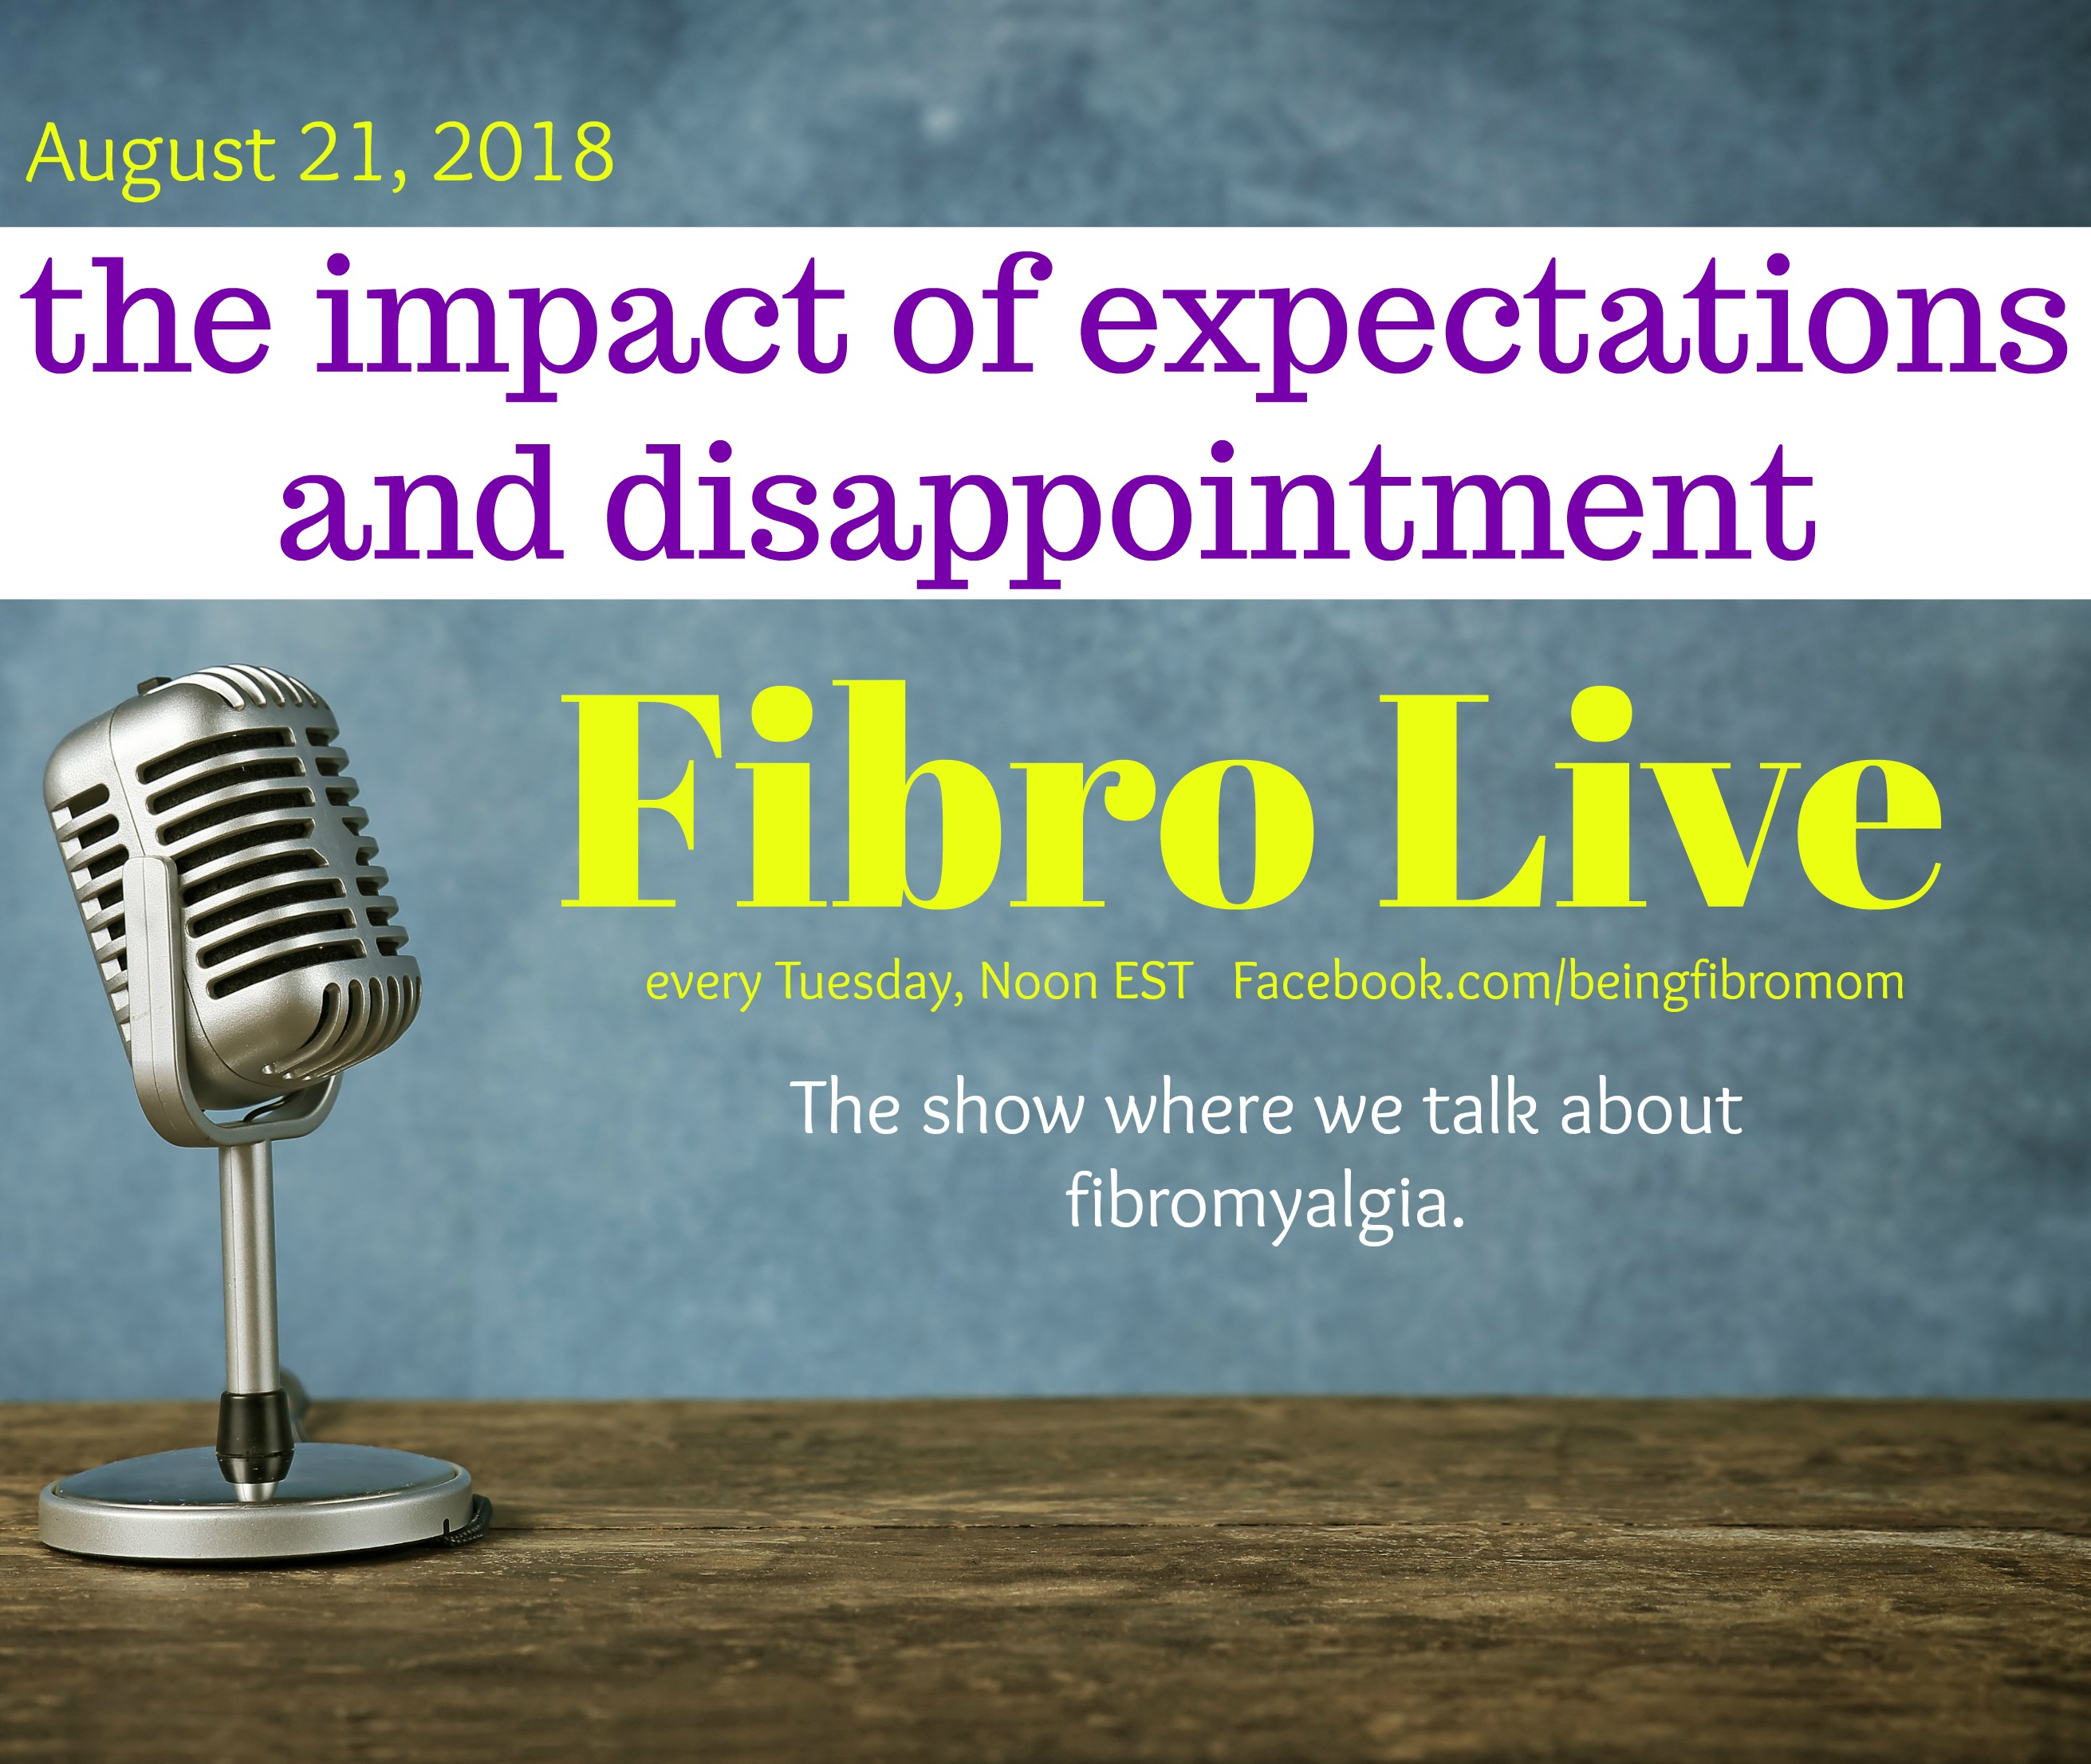 the impact of expectations and disappointment when living with a chronic illness #FibroLive #BeingFibroMom #Fibromyalgia